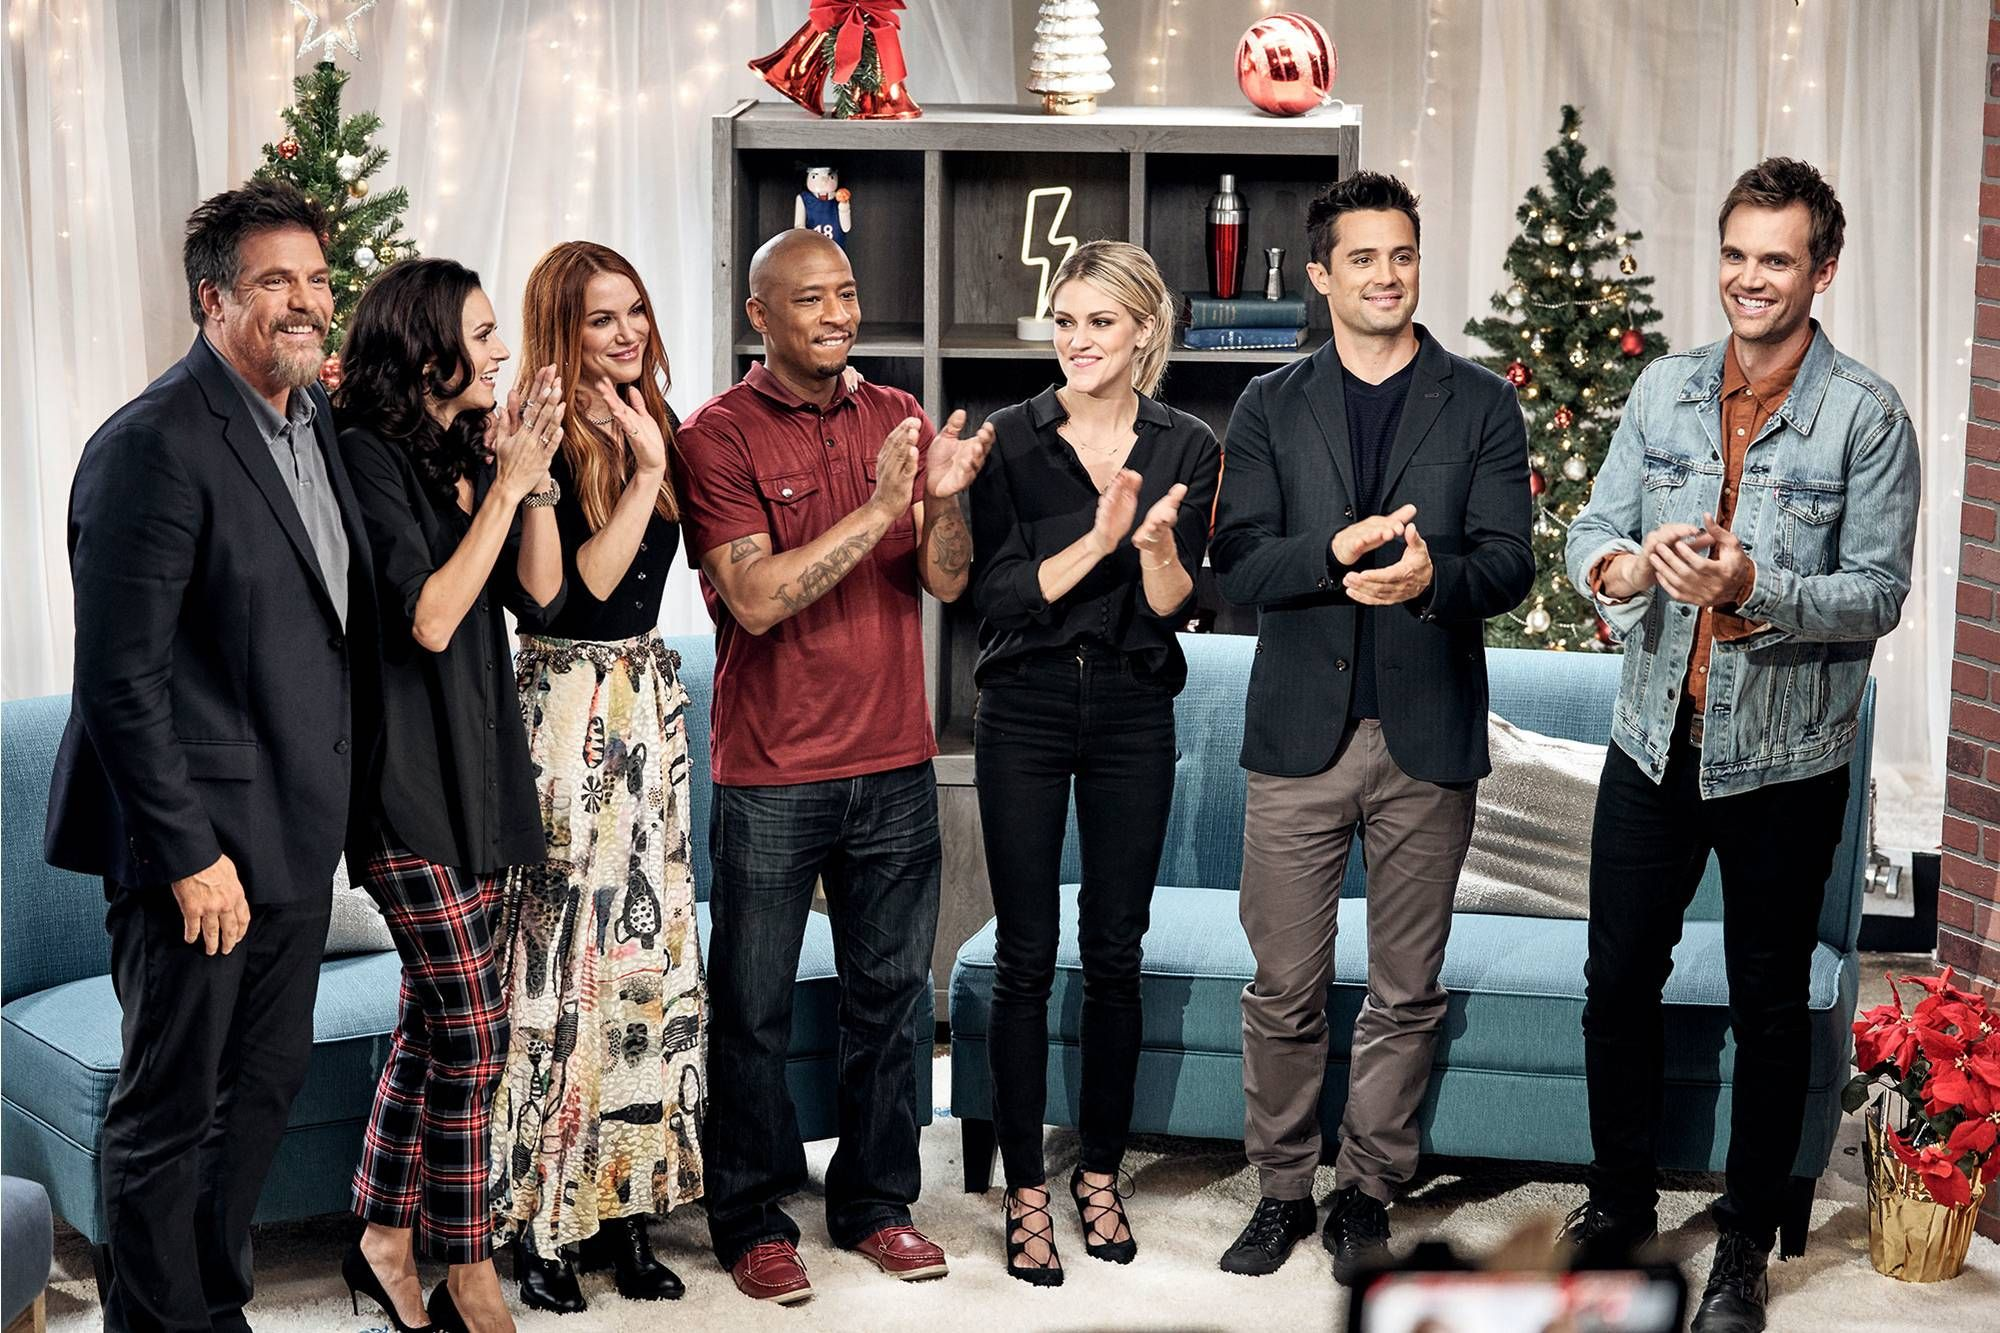 The Christmas Contract 2020 Cast One Tree Hill Cast on Reuniting in Lifetime's The Christmas